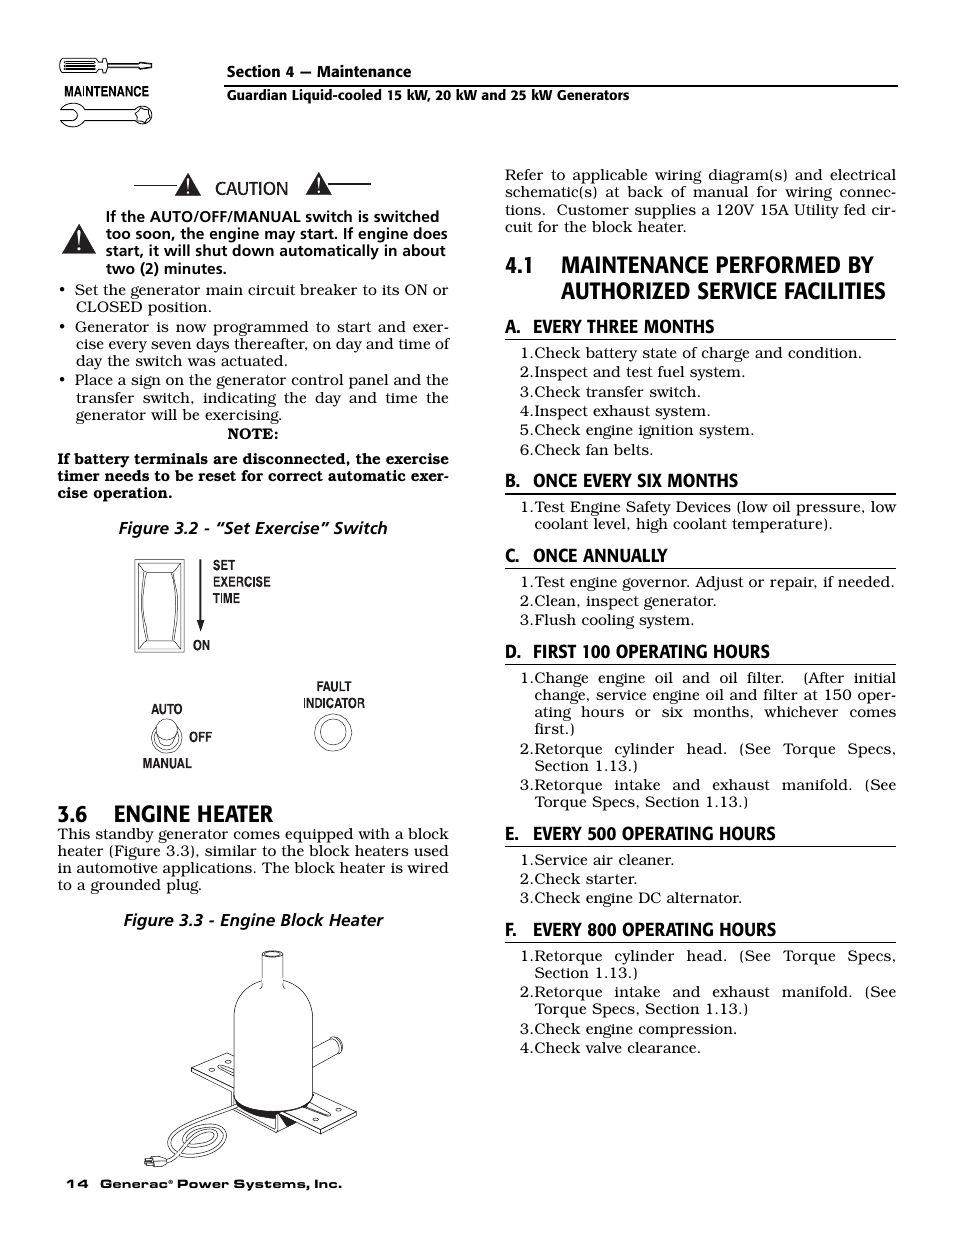 hight resolution of 6 engine heater generac 0047210 user manual page 16 52